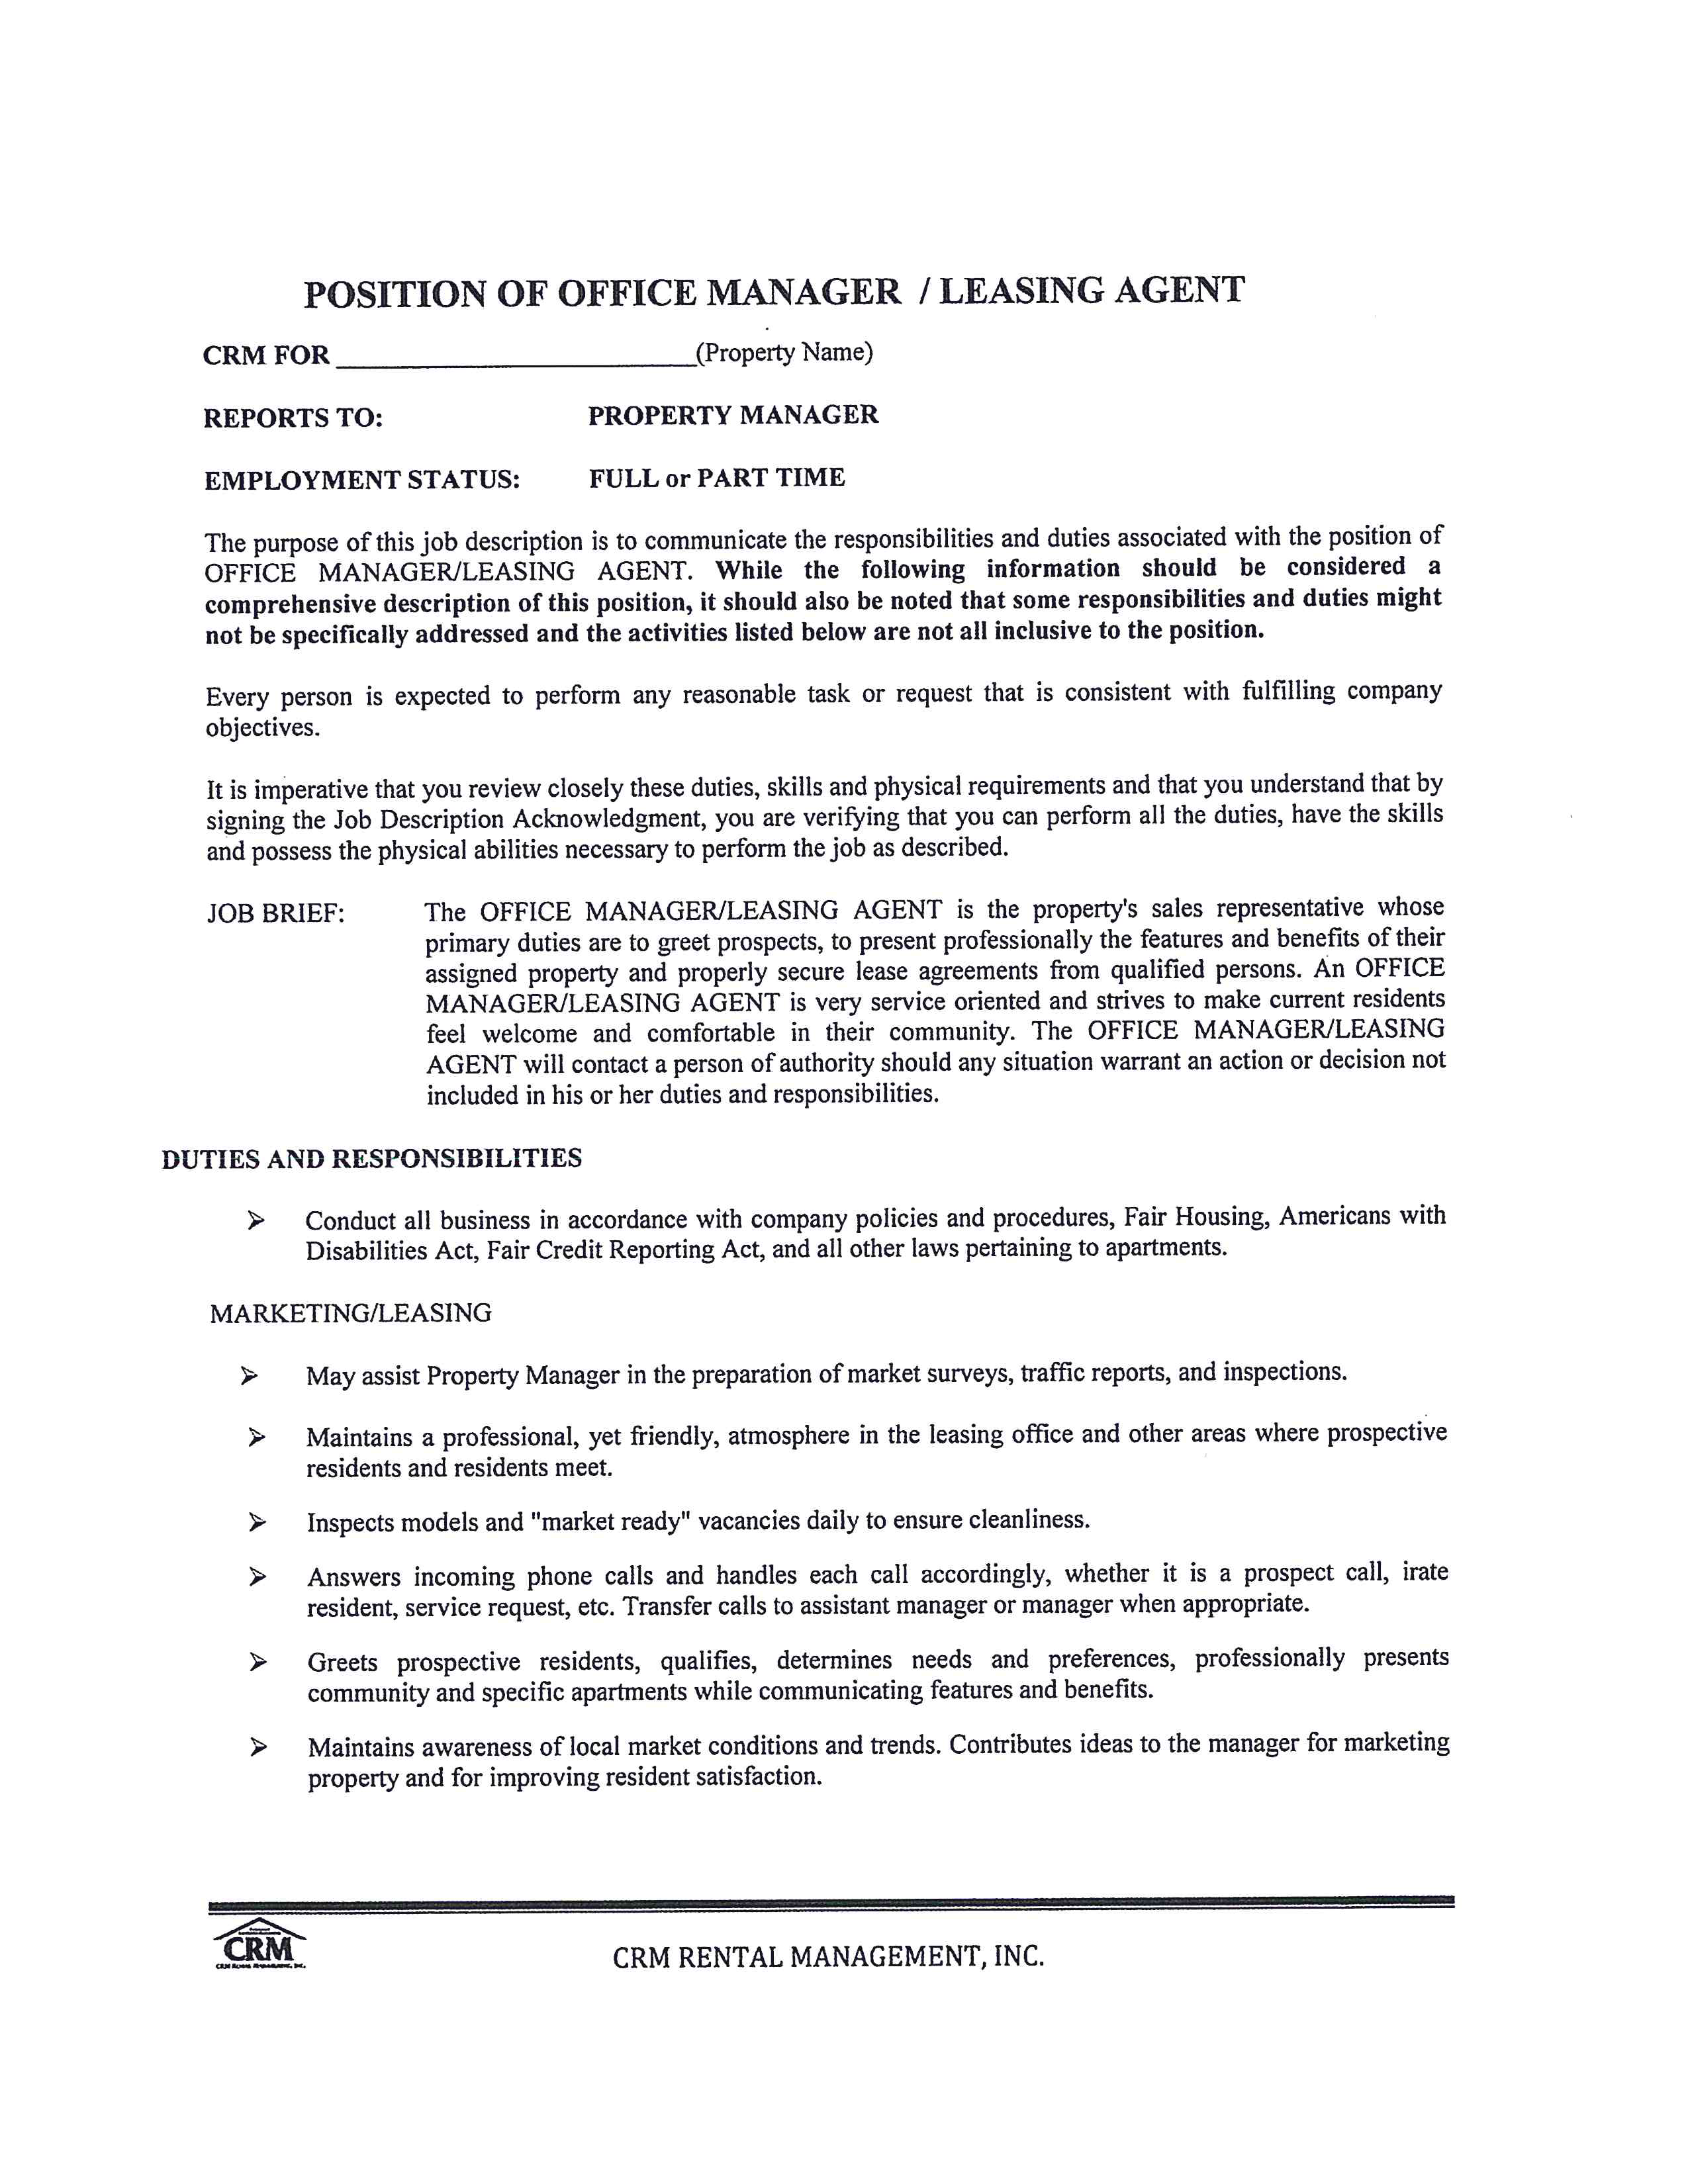 Free Office Manager Leasing Consultant Job Description Templates